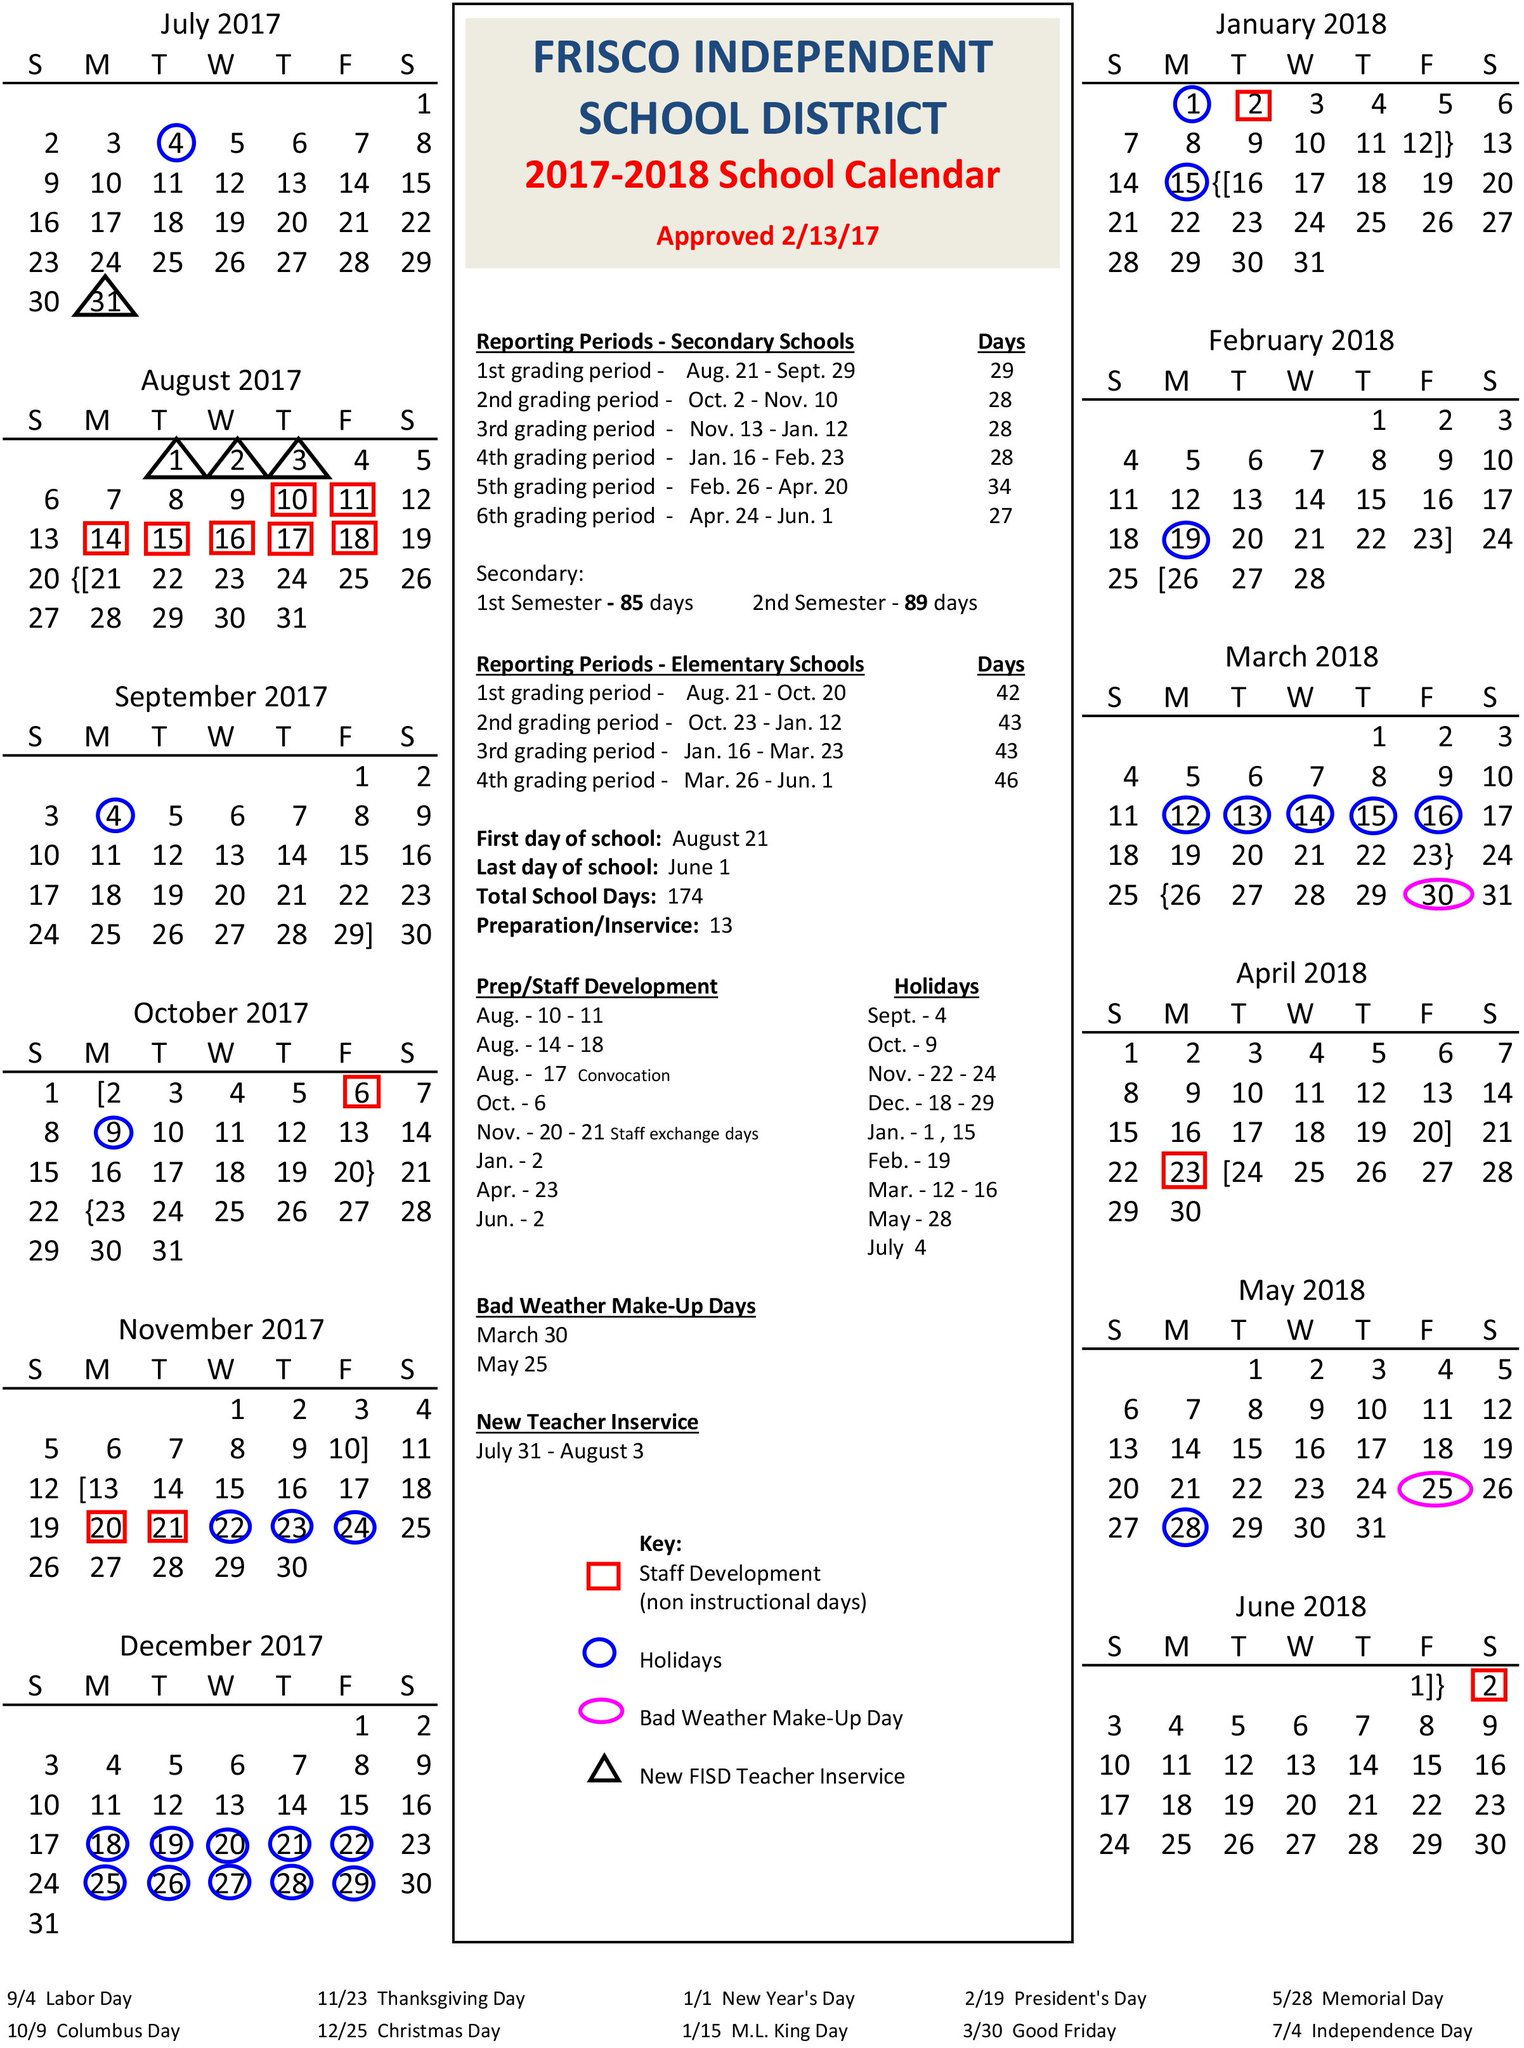 Frisco Isd 2022 Calendar.Frisco Isd On Twitter Here S A Look At The Approved 2017 18 School Calendar If Bad Weather Days Are Needed May 25 Will Be The First To Be Utilized Https T Co Gi4k5tsxcv